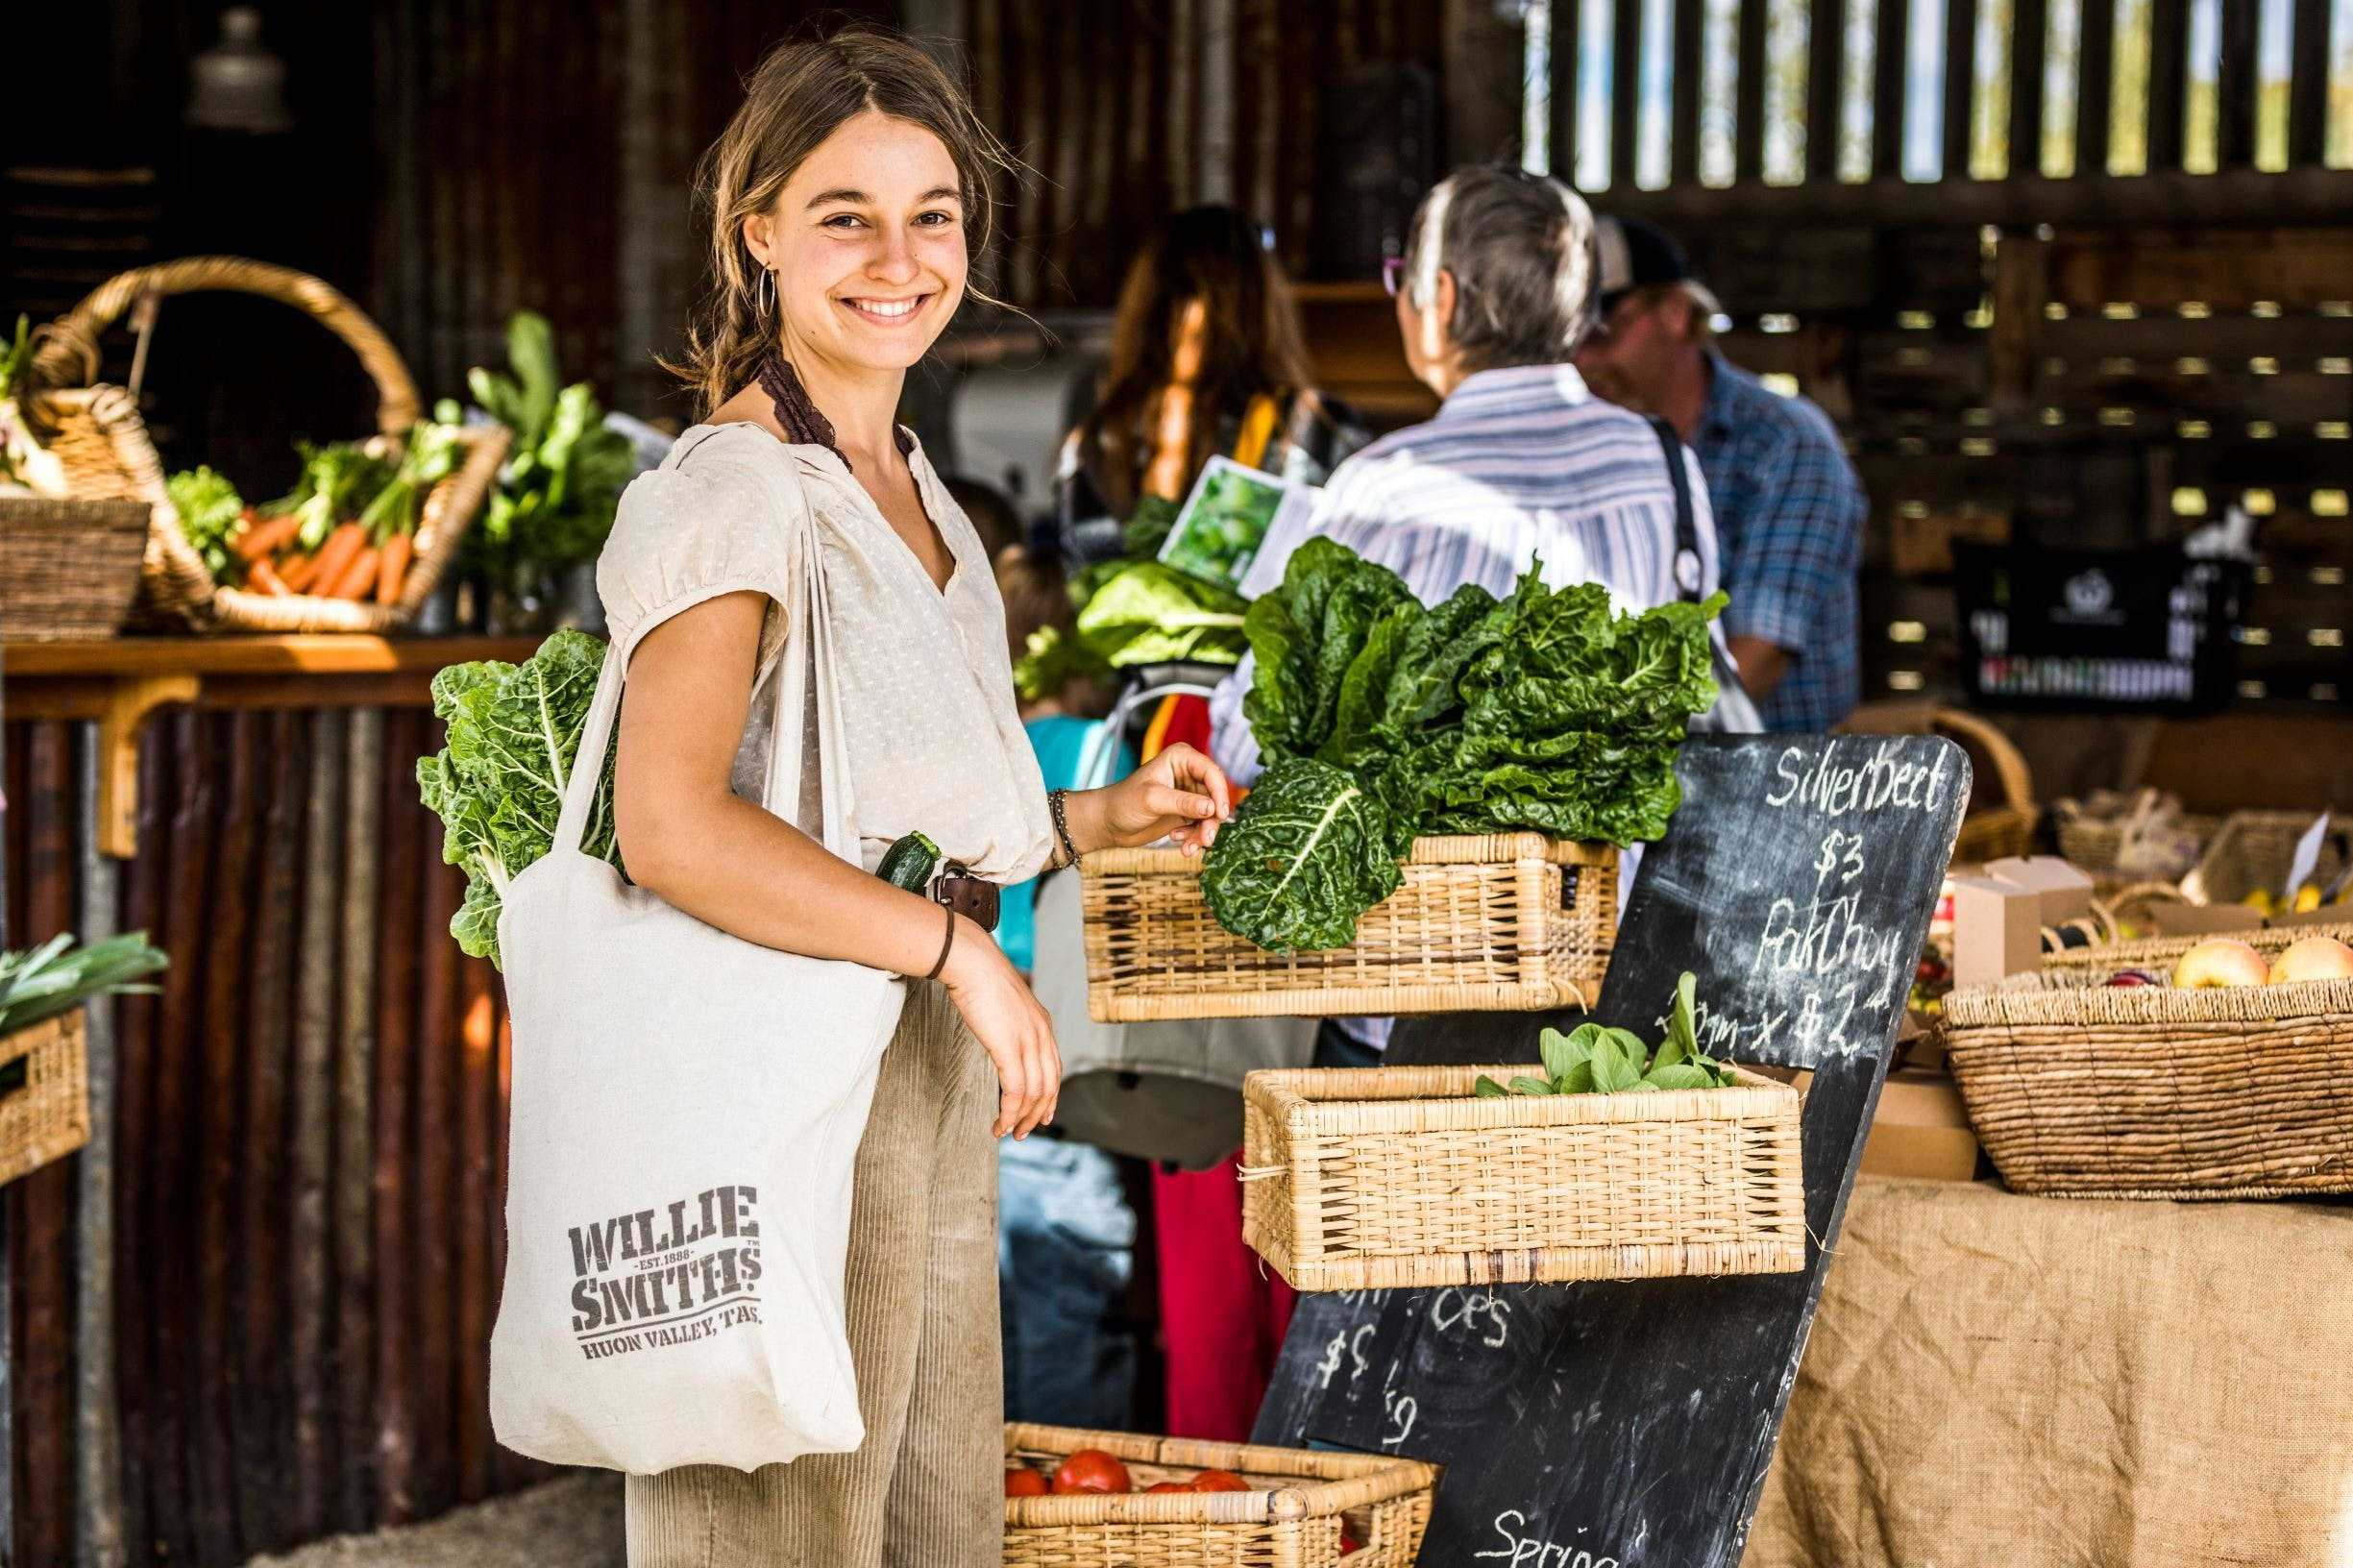 Willie Smith's Artisan and Produce Market - New South Wales Tourism